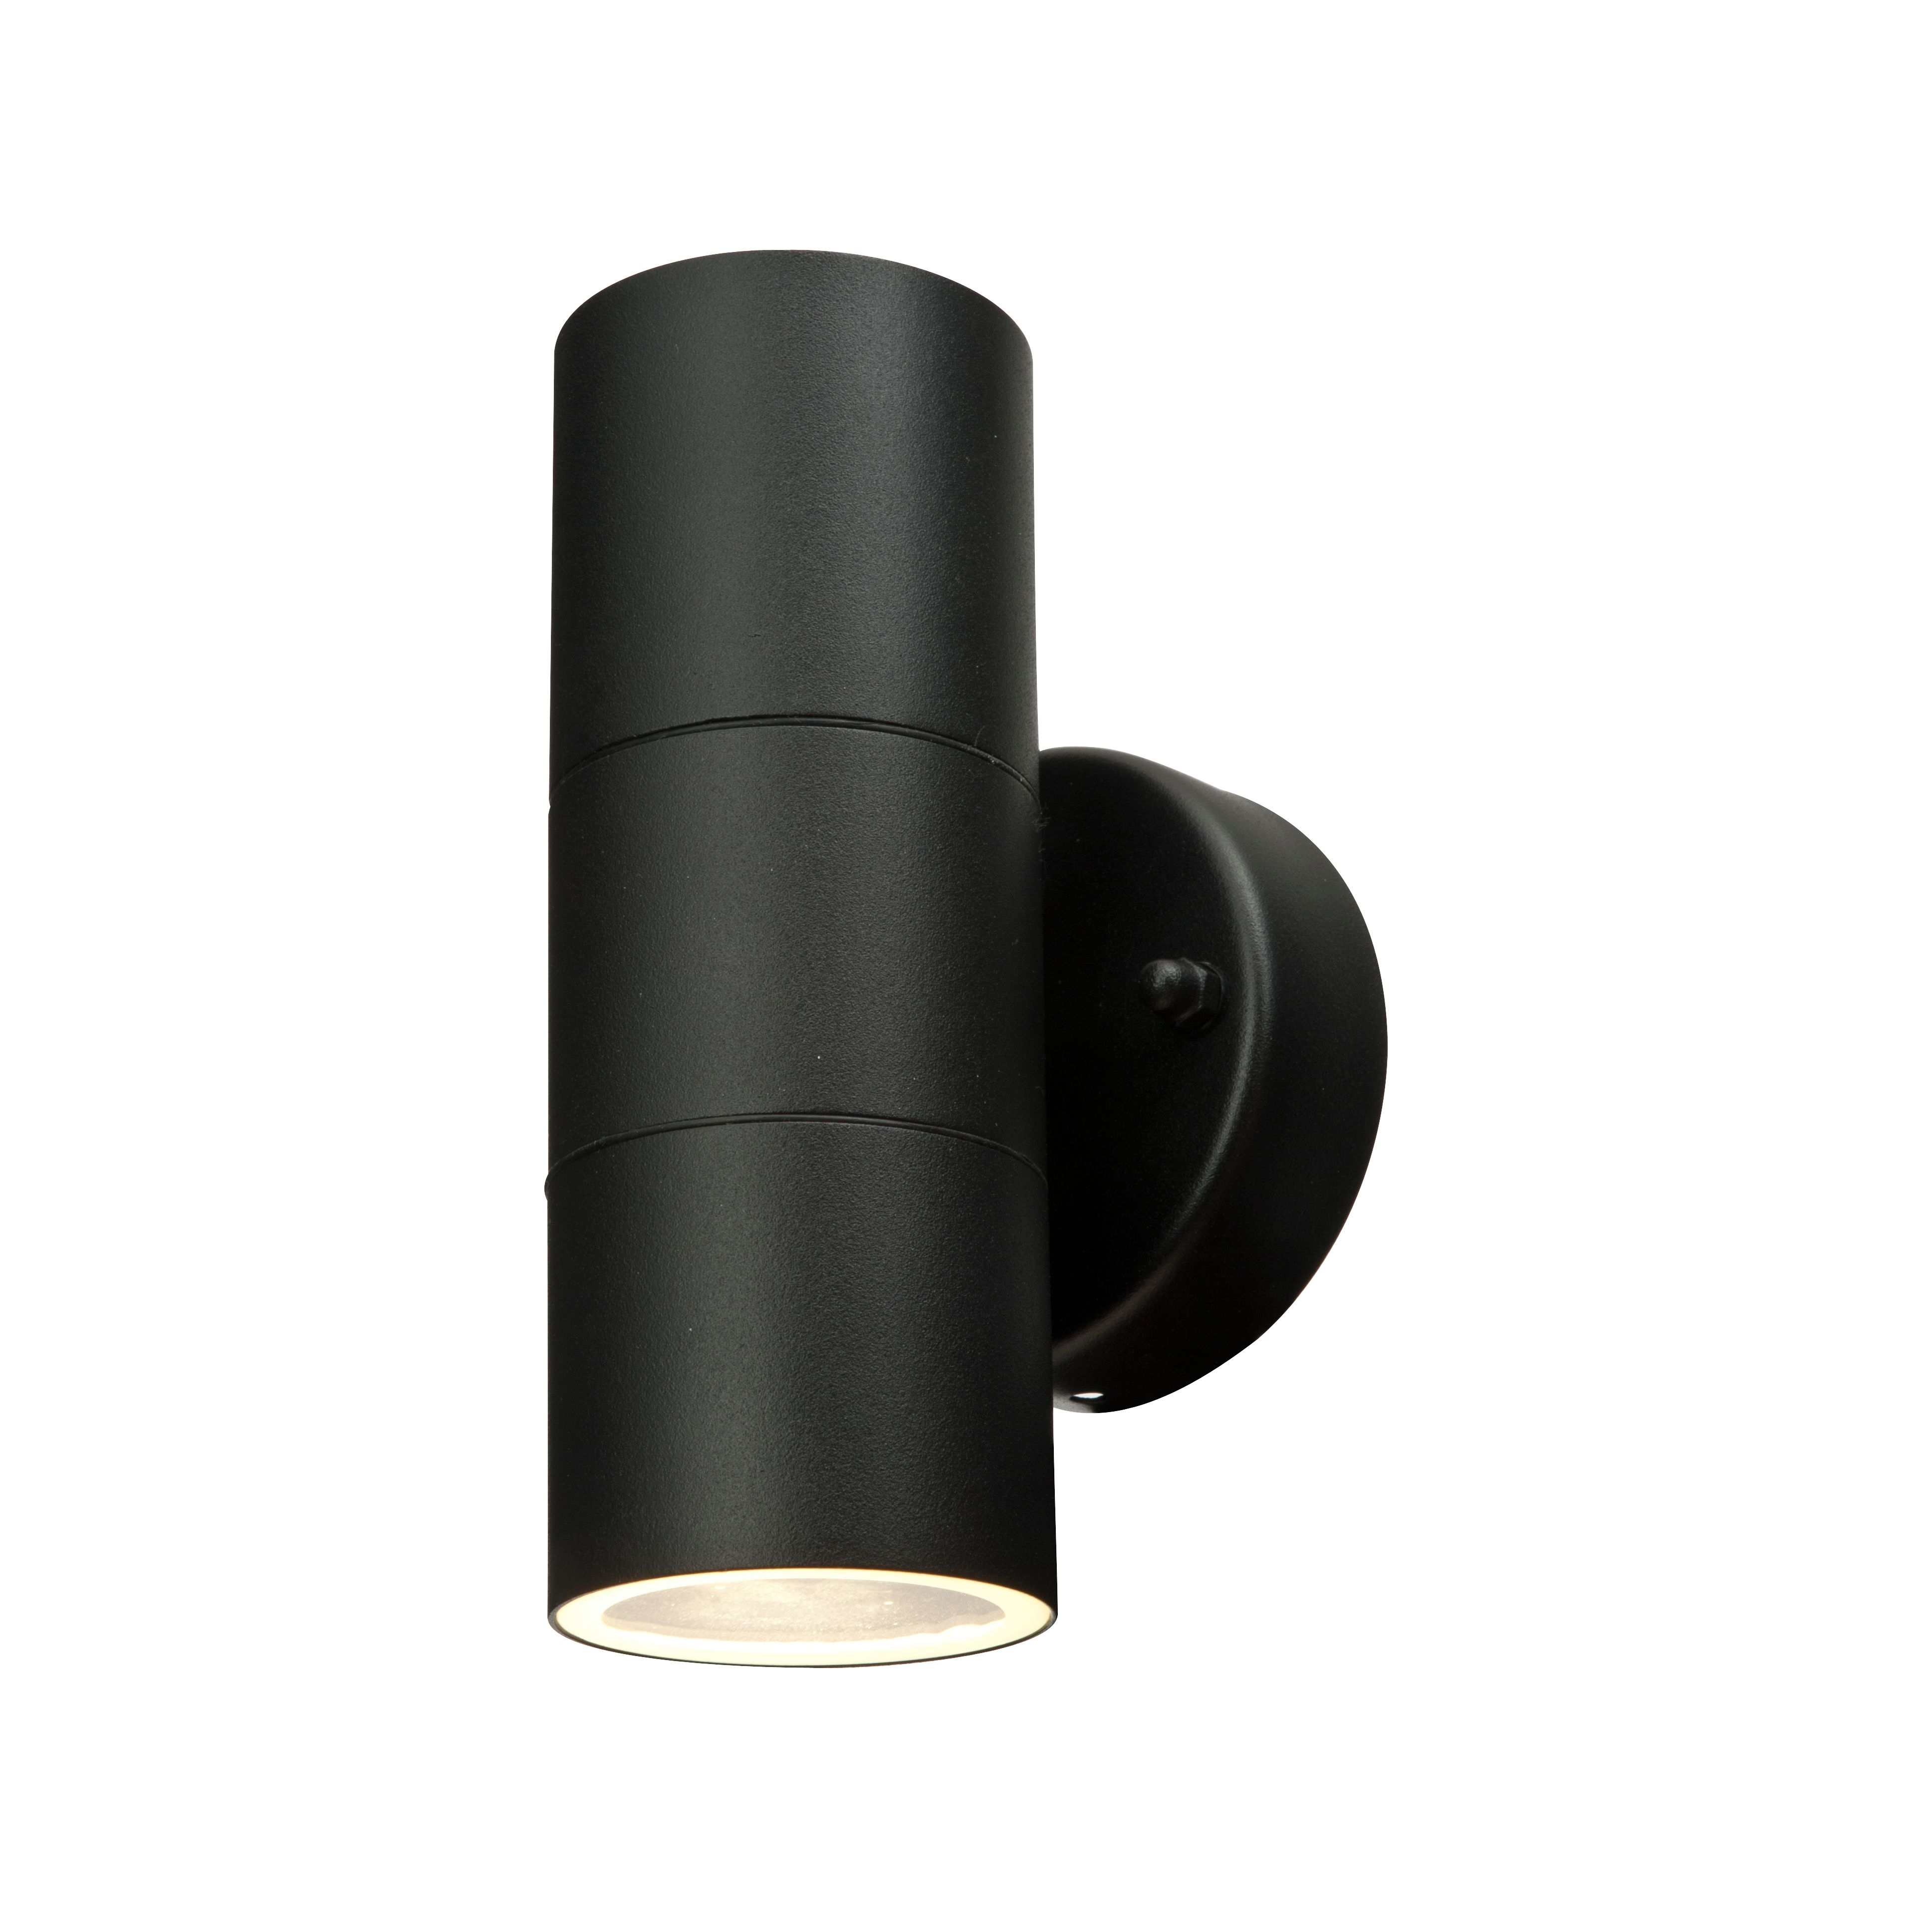 Blooma Somnus Black Mains Powered External Up & Down Wall Light For Best And Newest Diy Outdoor Wall Lights (View 3 of 20)